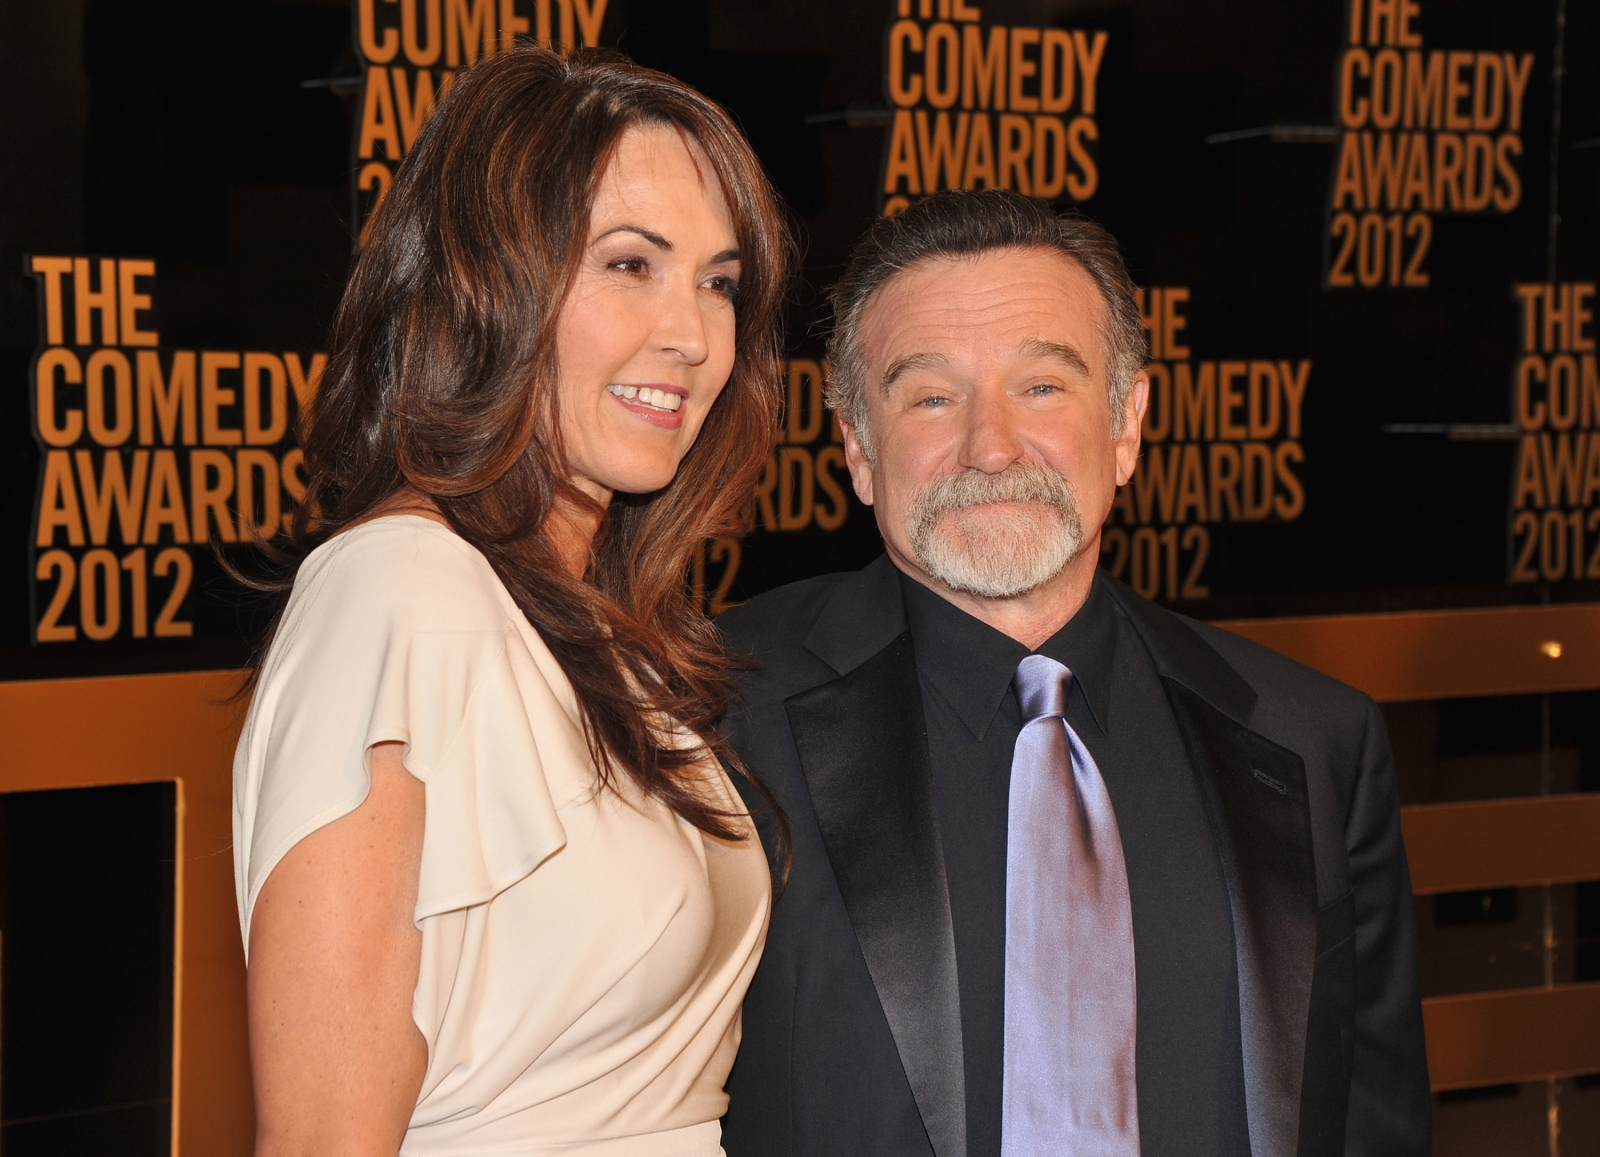 Susan Schneider and Robin Williams